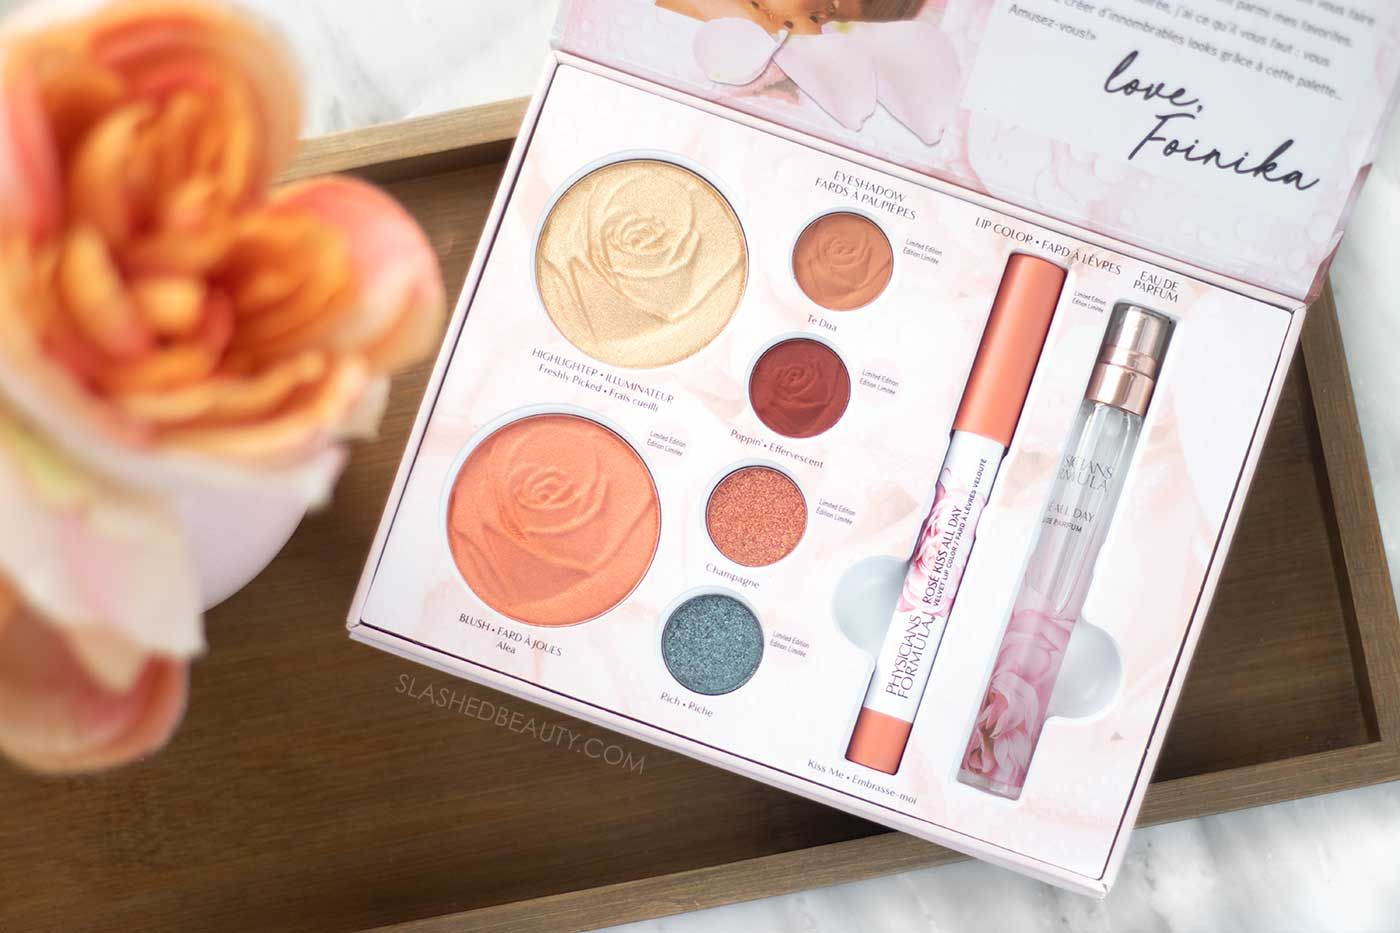 Inside the Physicians Formula Rosé All Day Collection x Exteriorglam Box Set Review & Swatches | Slashed Beauty